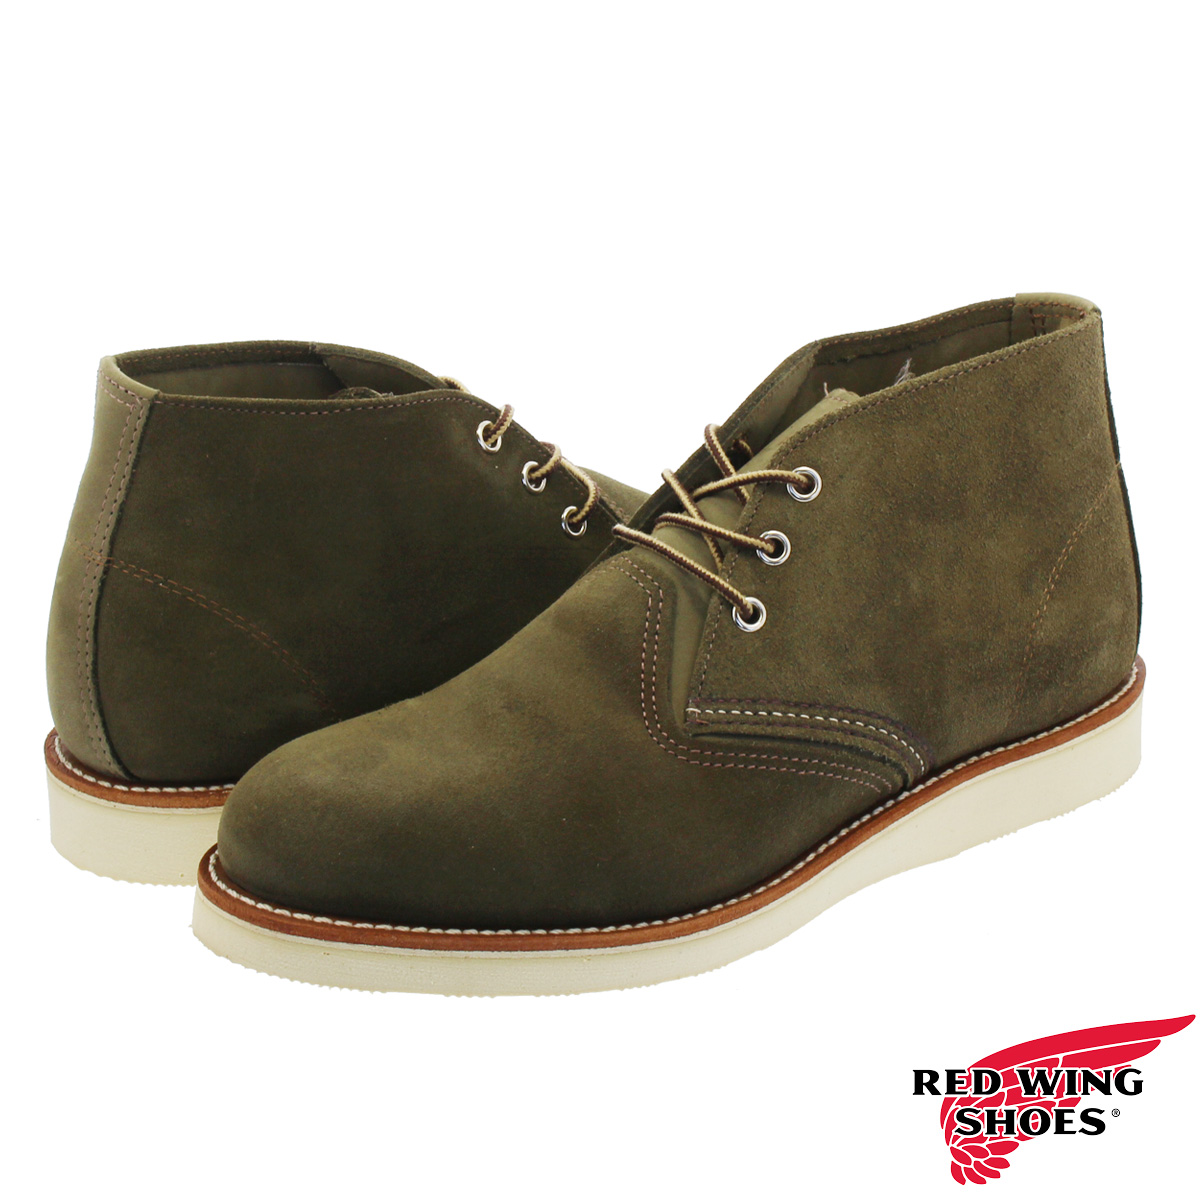 RED WING WORK CHUKKA 【Dワイズ】 レッドウィング ワーク チャッカ LODEN ABILENE LEATHER rw-3152